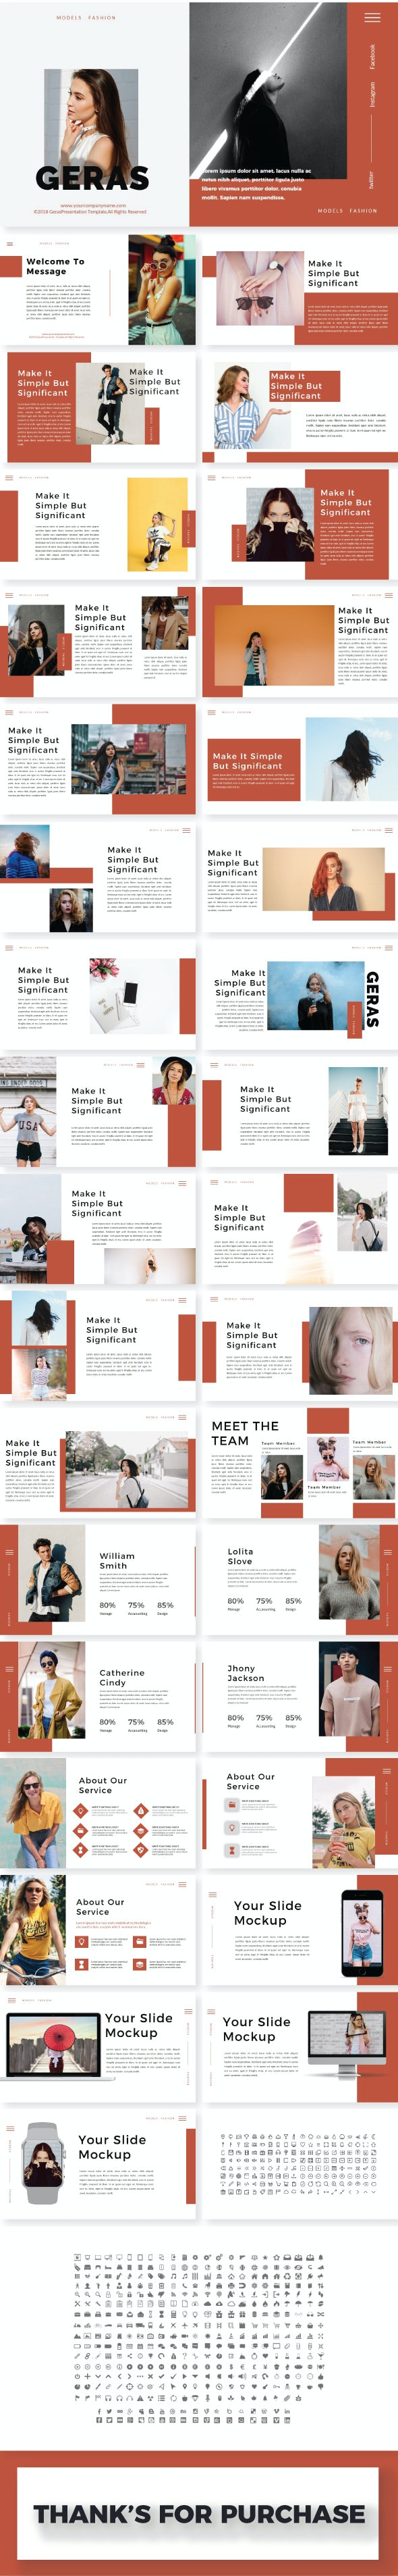 Geras Google Slide Template - Google Slides Presentation Templates